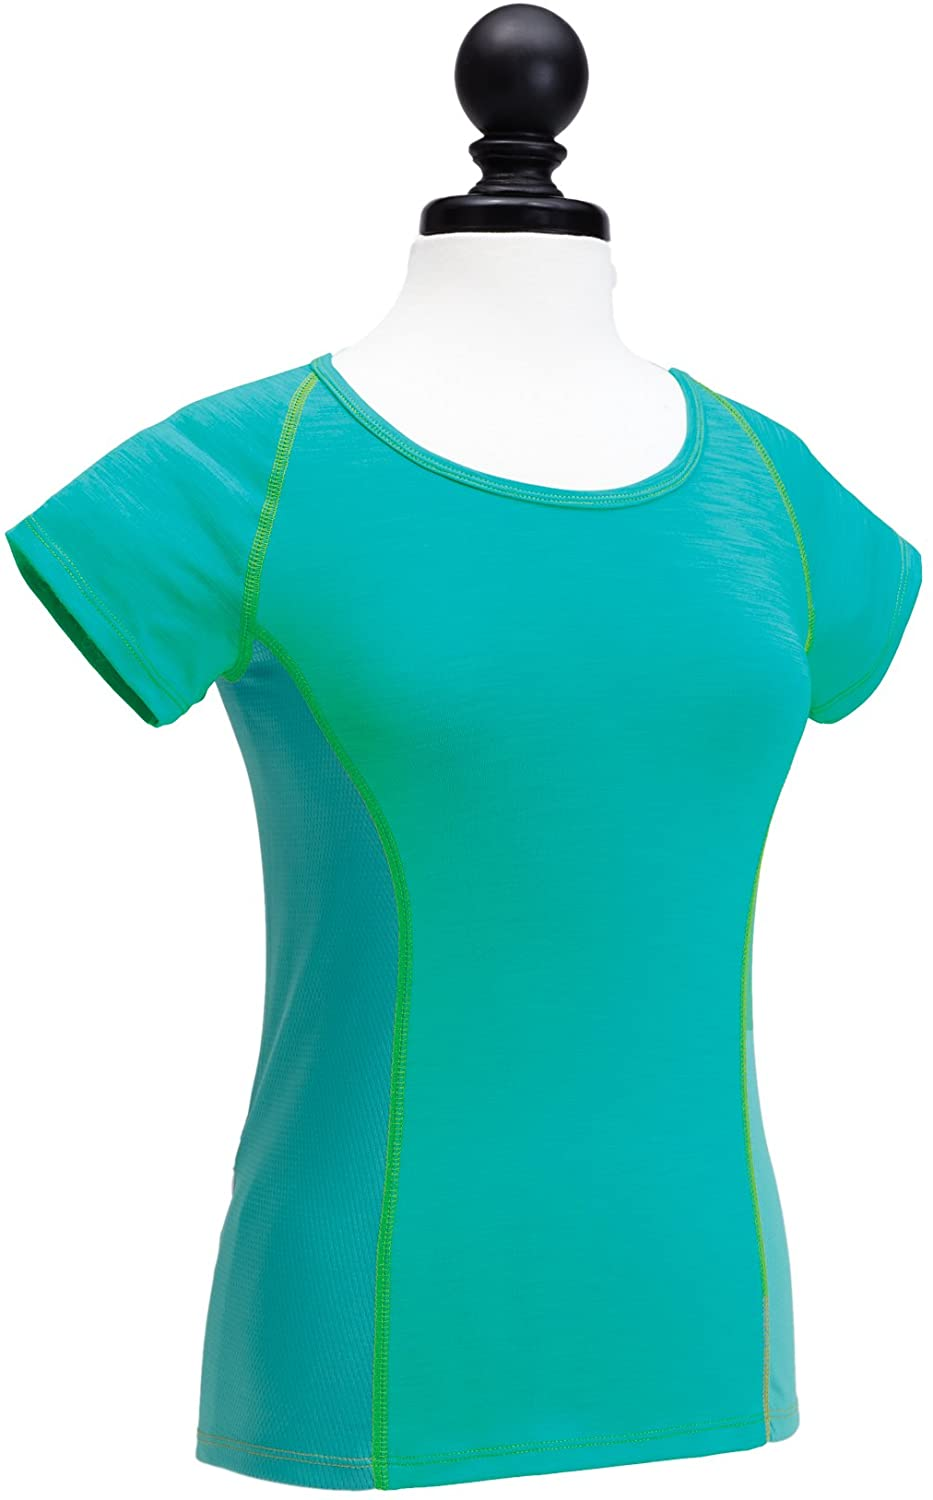 Moxie Cycling Women's Color Block Tee Jersey